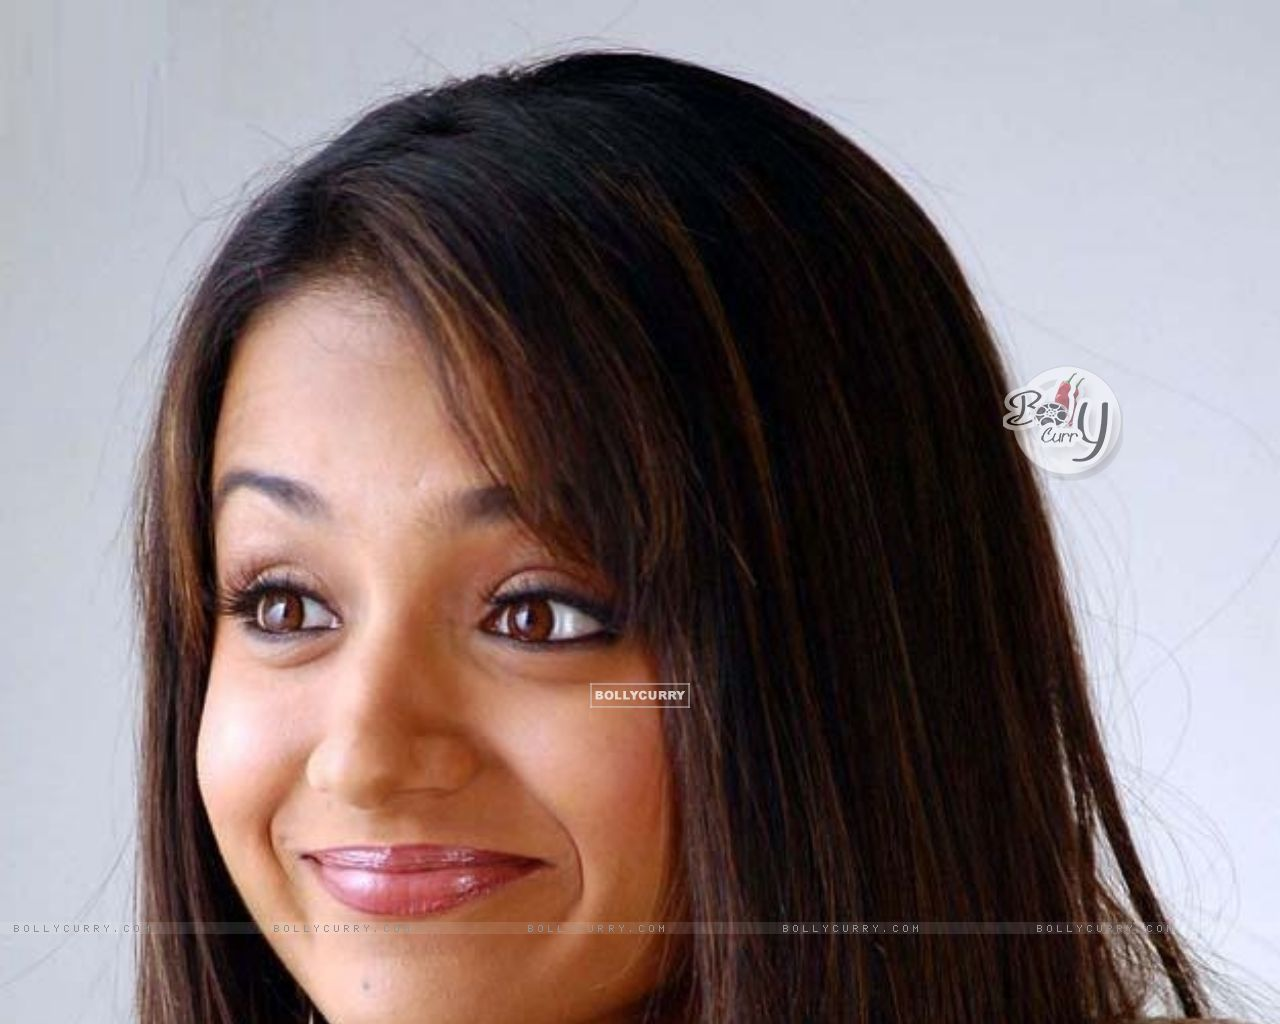 ... 1280x1024 wallpaper size image of celebrity trisha krishnan